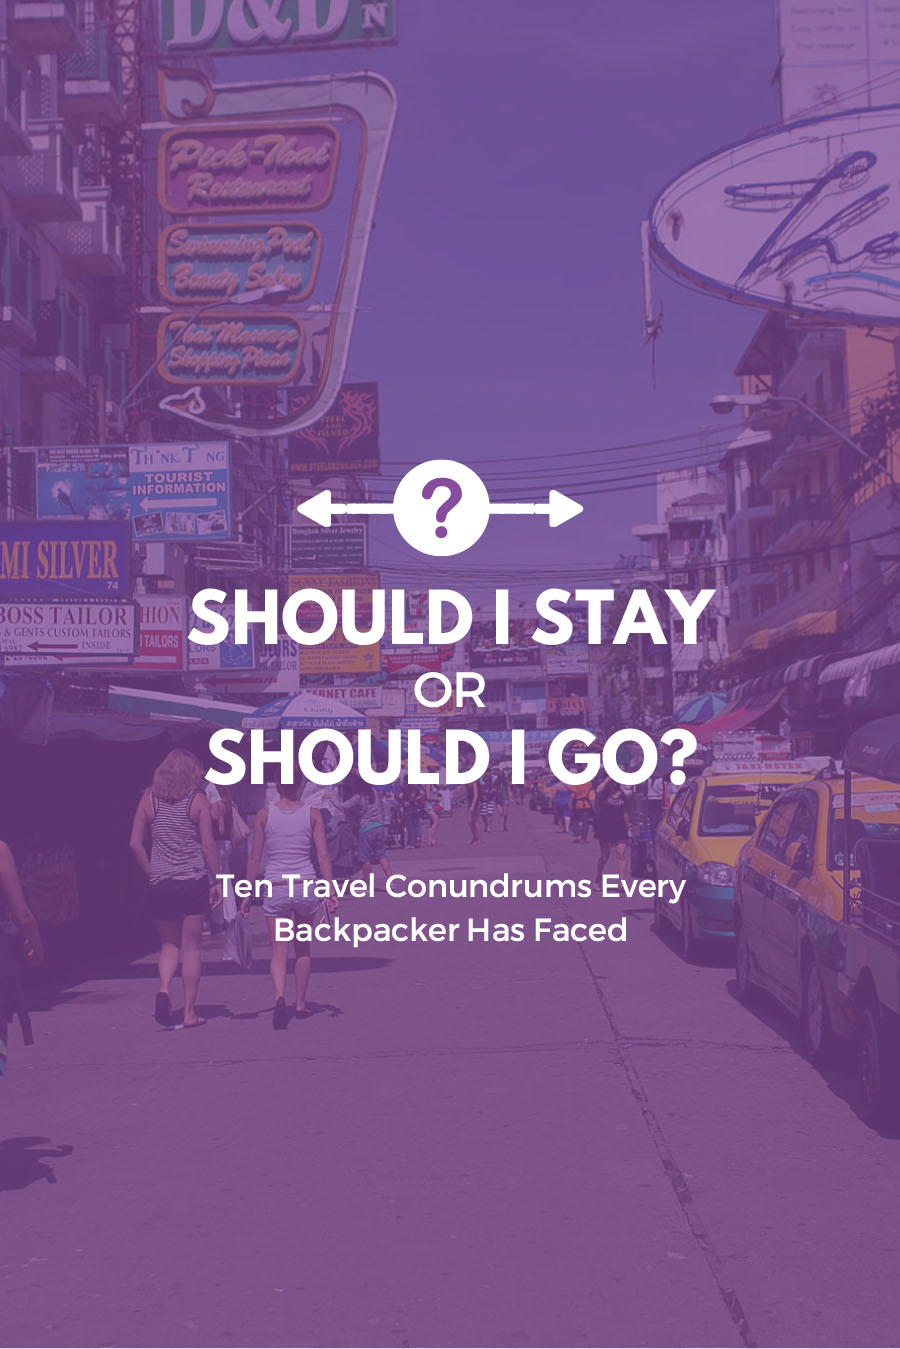 Should I stay or should I go? -| Ten Travel Conundrums Every Backpacker Has Faced